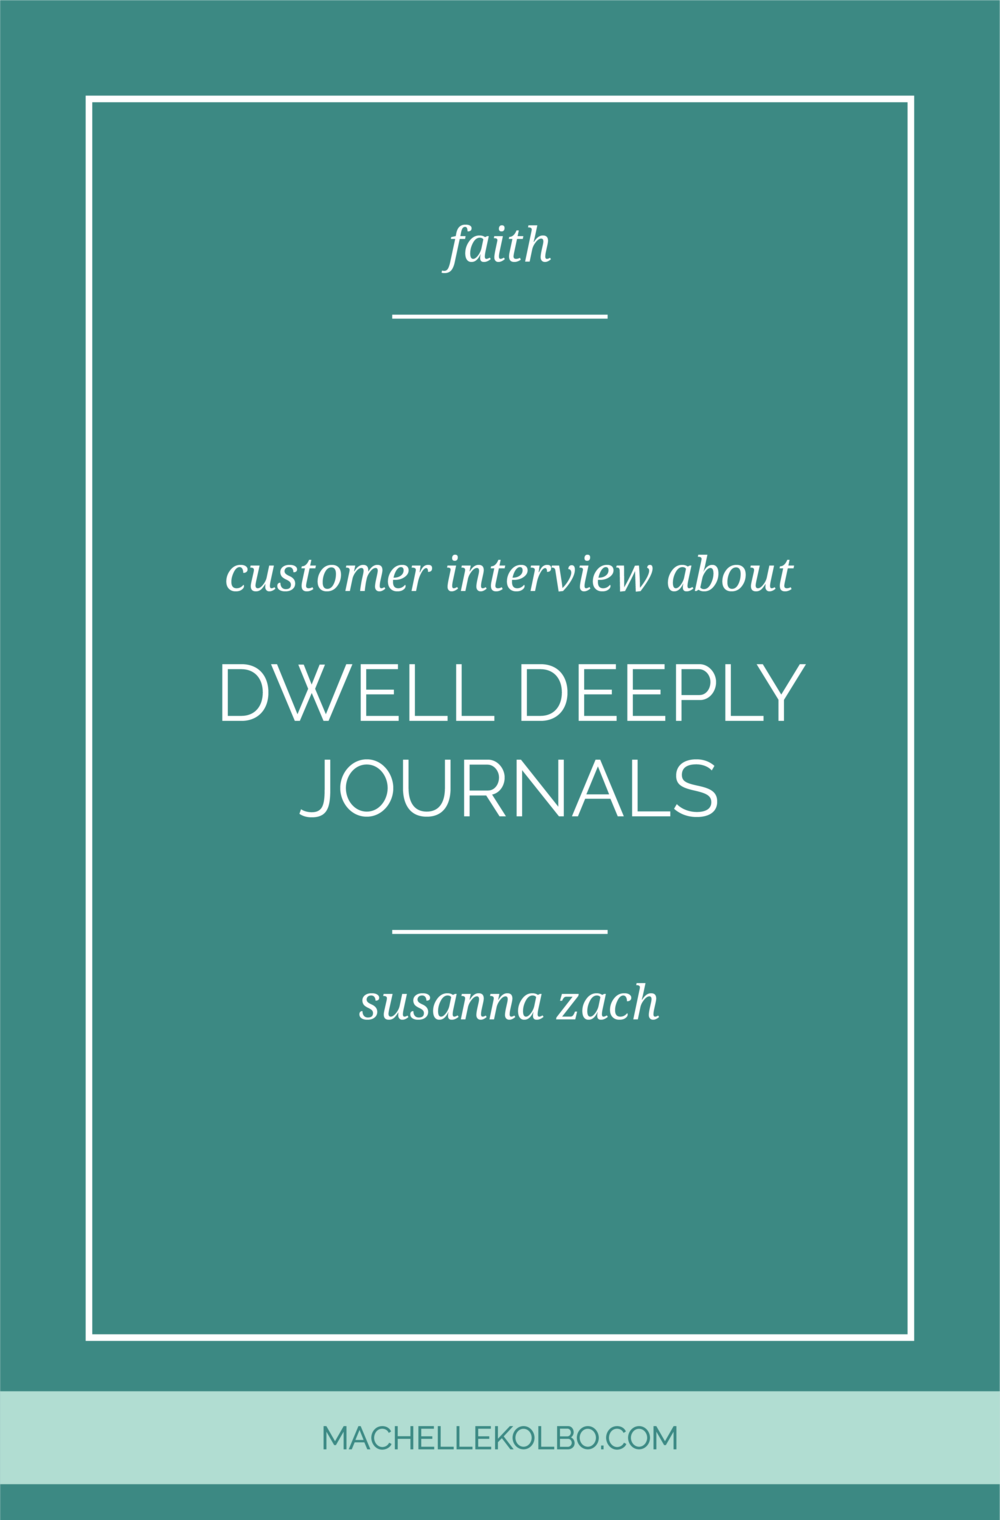 Dwell Deeply Journal Customer Guest Post | Machelle Kolbo Design Studio